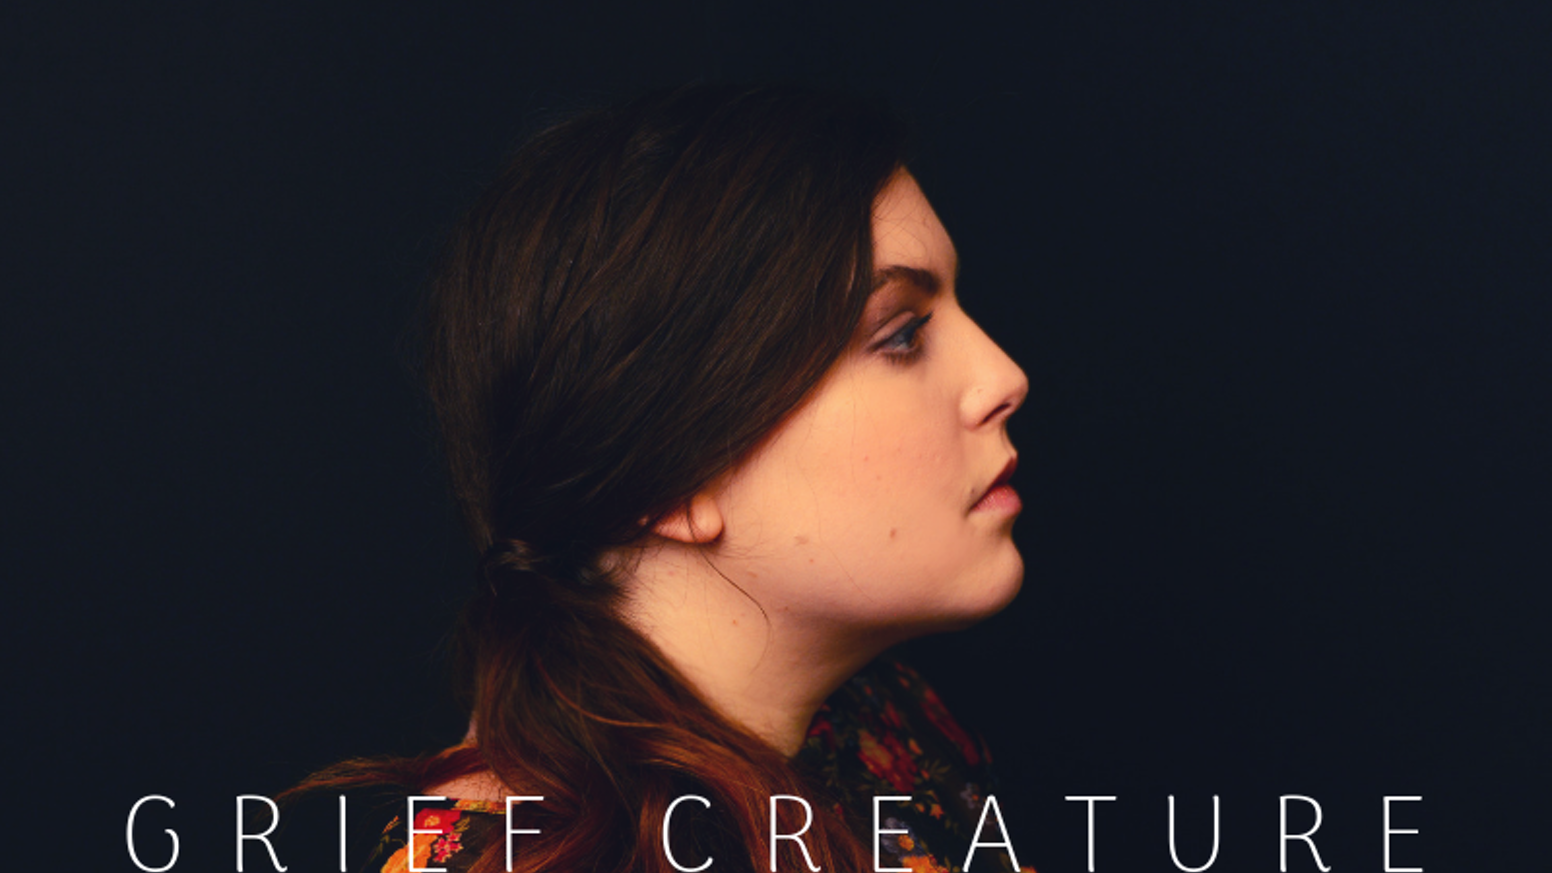 Grief Creature is my life's work, my masterpiece, a break-up album to shame, an ode to mental illness, a love letter to hope.